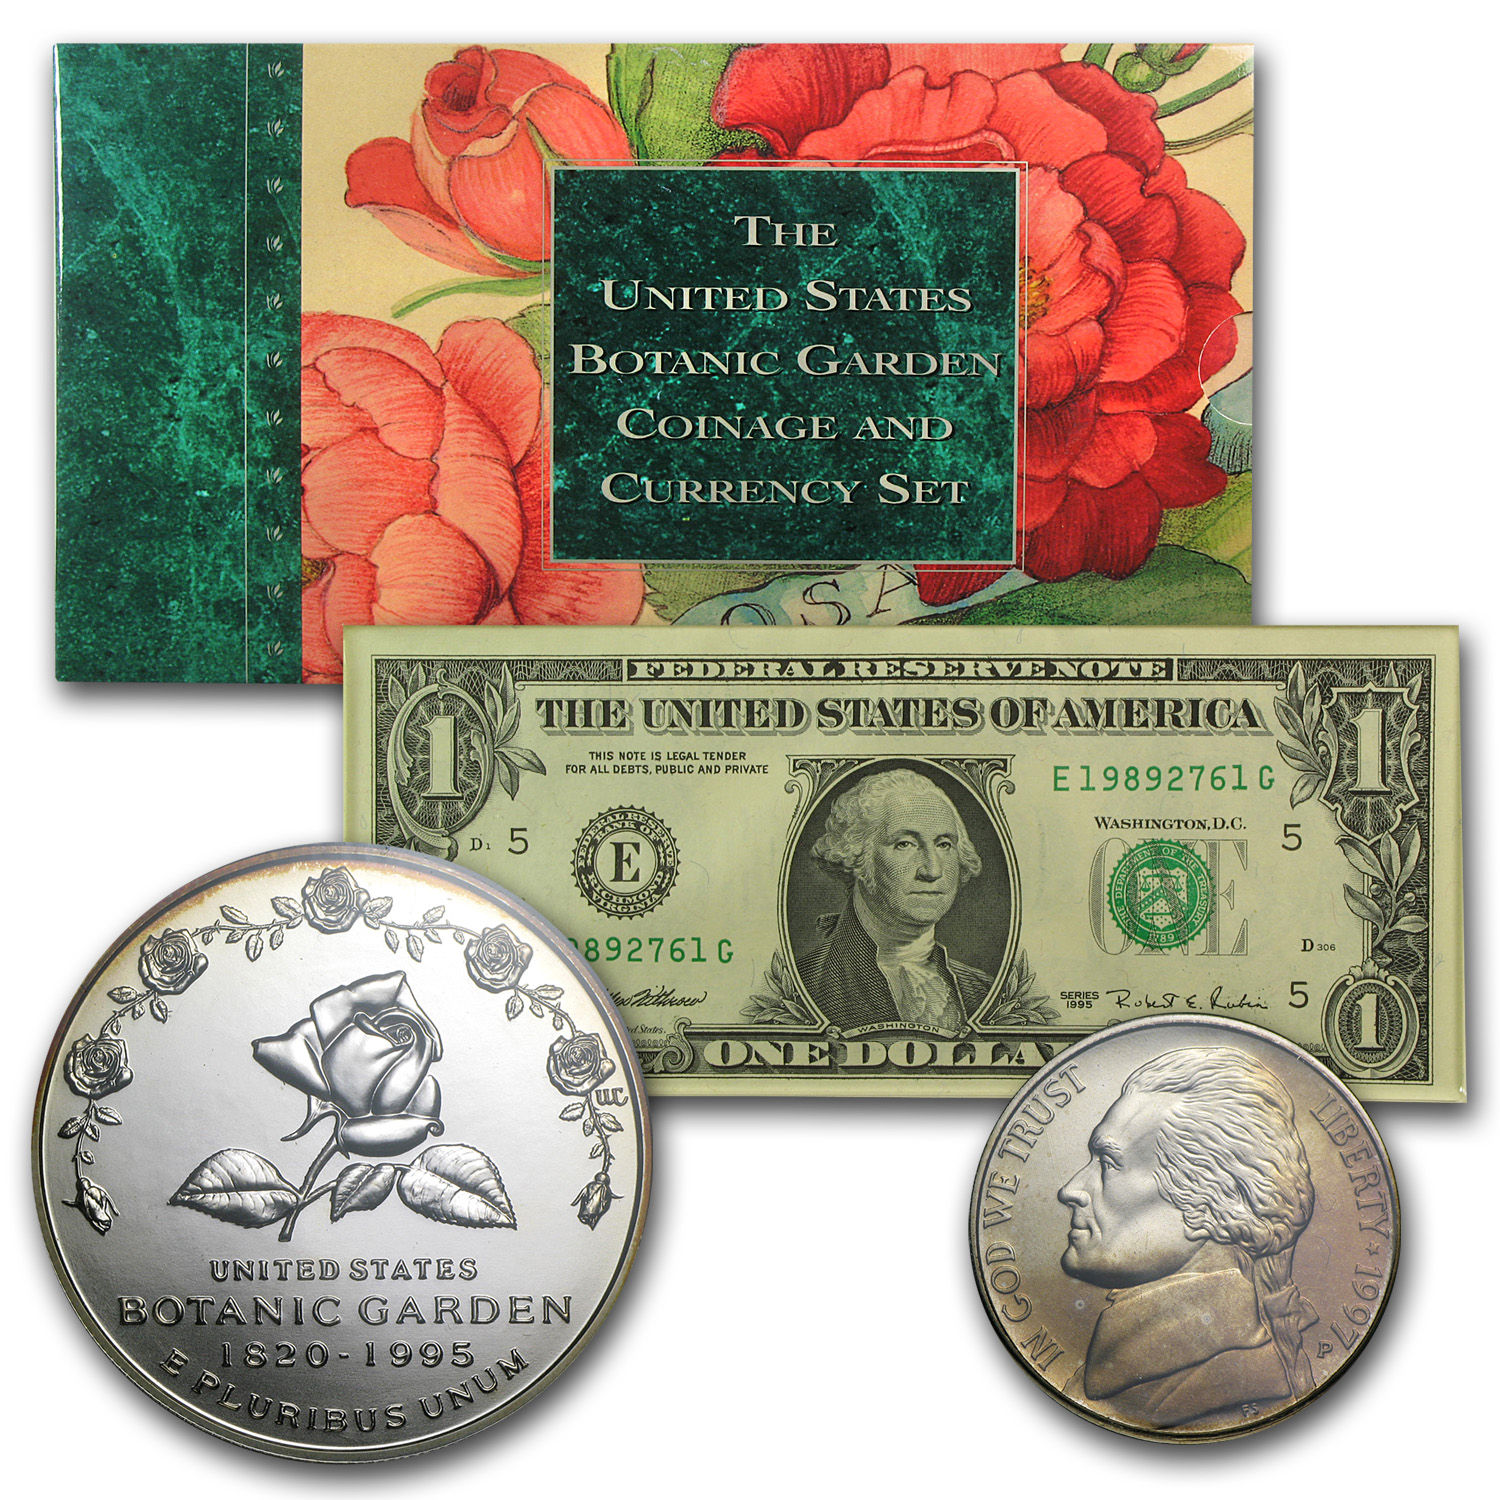 1997-P Botanical Garden $1 Silver Commem Coinage & Currency Set